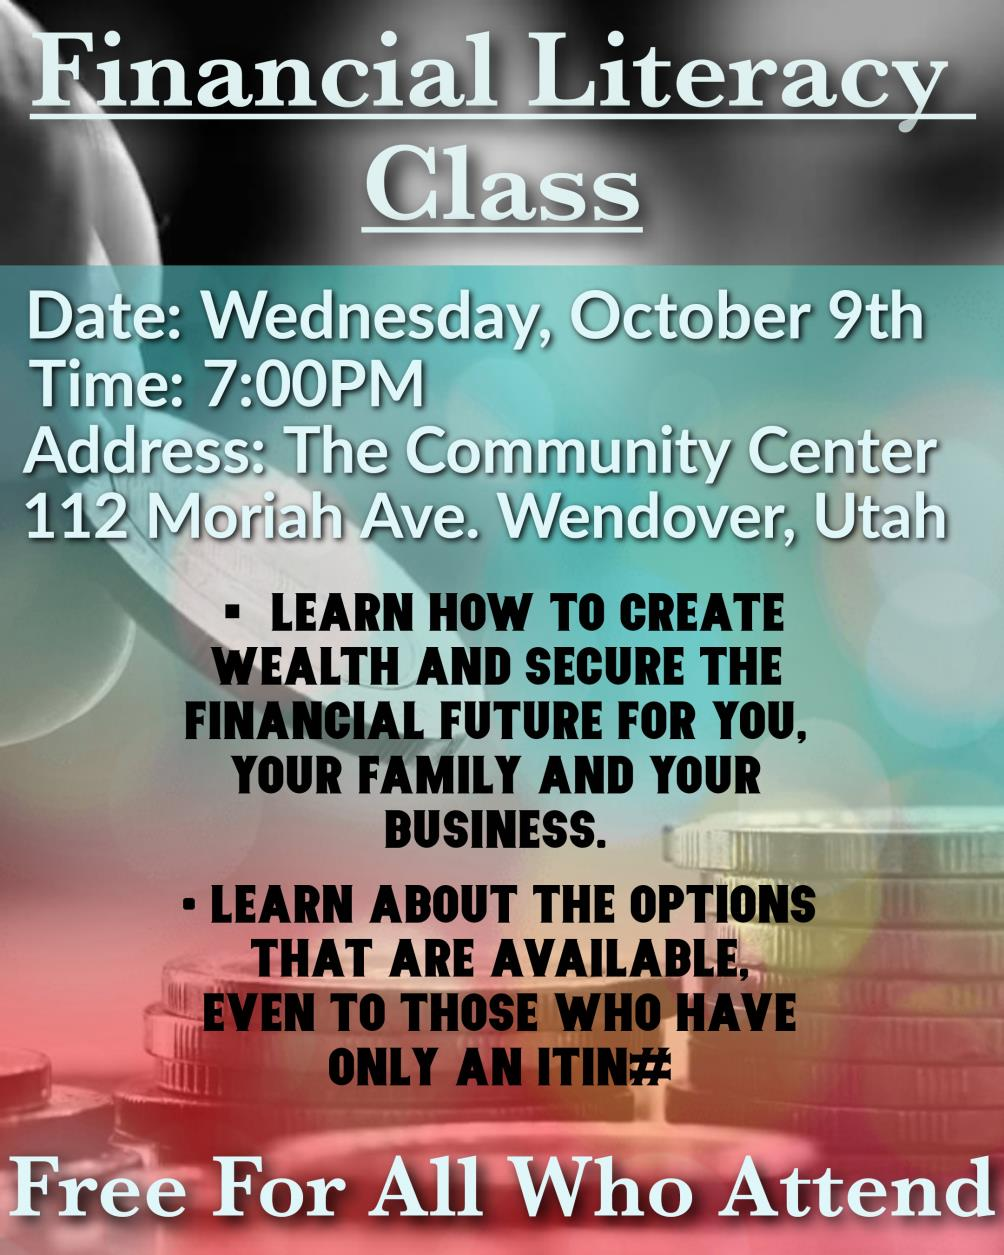 Wendover Community Center Hosts Financial Literacy Class